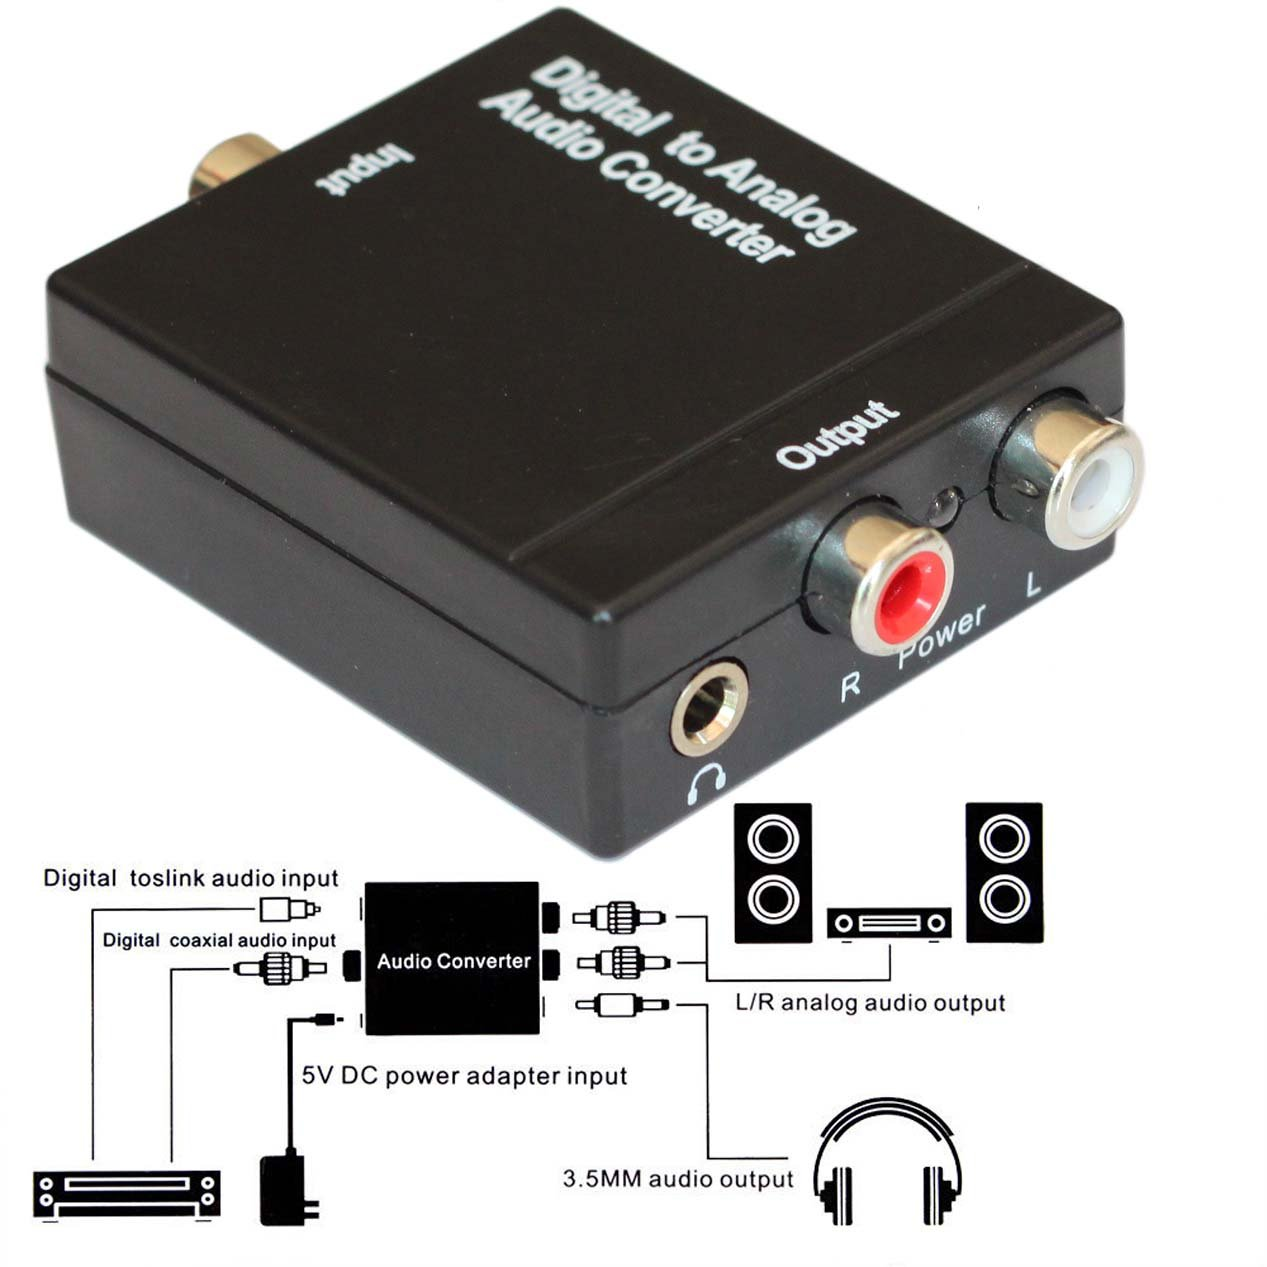 EASYDAY Digital to Analog Audio Converter - Optical SPDIF Toslink Coaxial to RCA L/R Adapter with 3.5mm Jack, 24-bit 192kHz DAC Supports Simultaneous Headphone and Speaker Outputs DAC3.5_US2